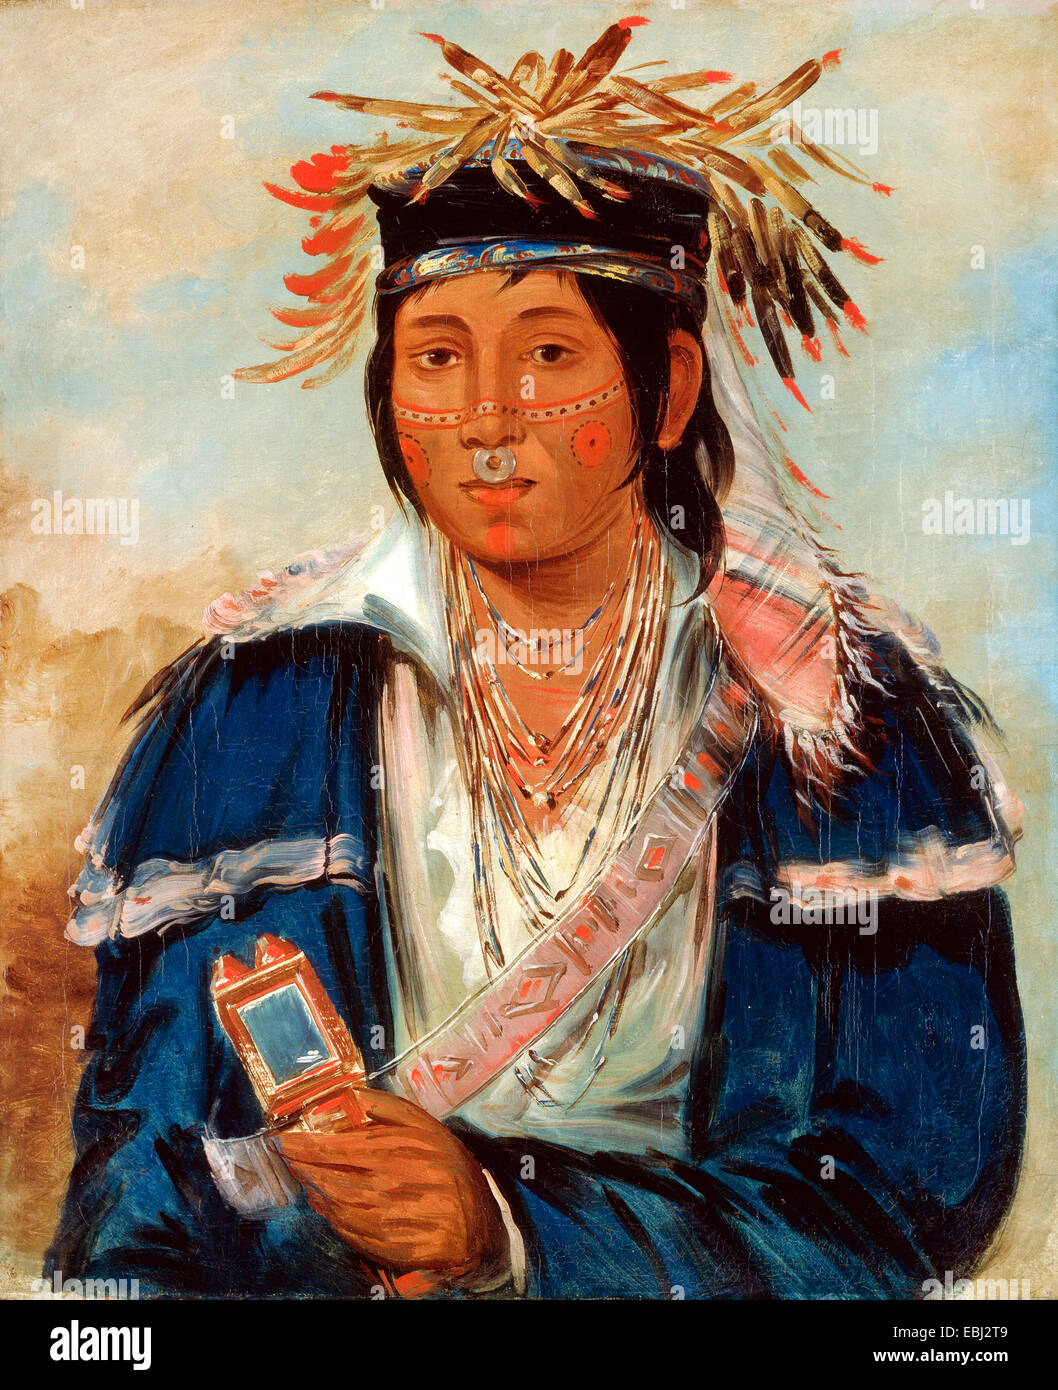 George Catlin, Kee-mo-ra-nia, No English, a Dandy 1830 Oil on canvas. Smithsonian American Art Museum, Washington, - Stock Image